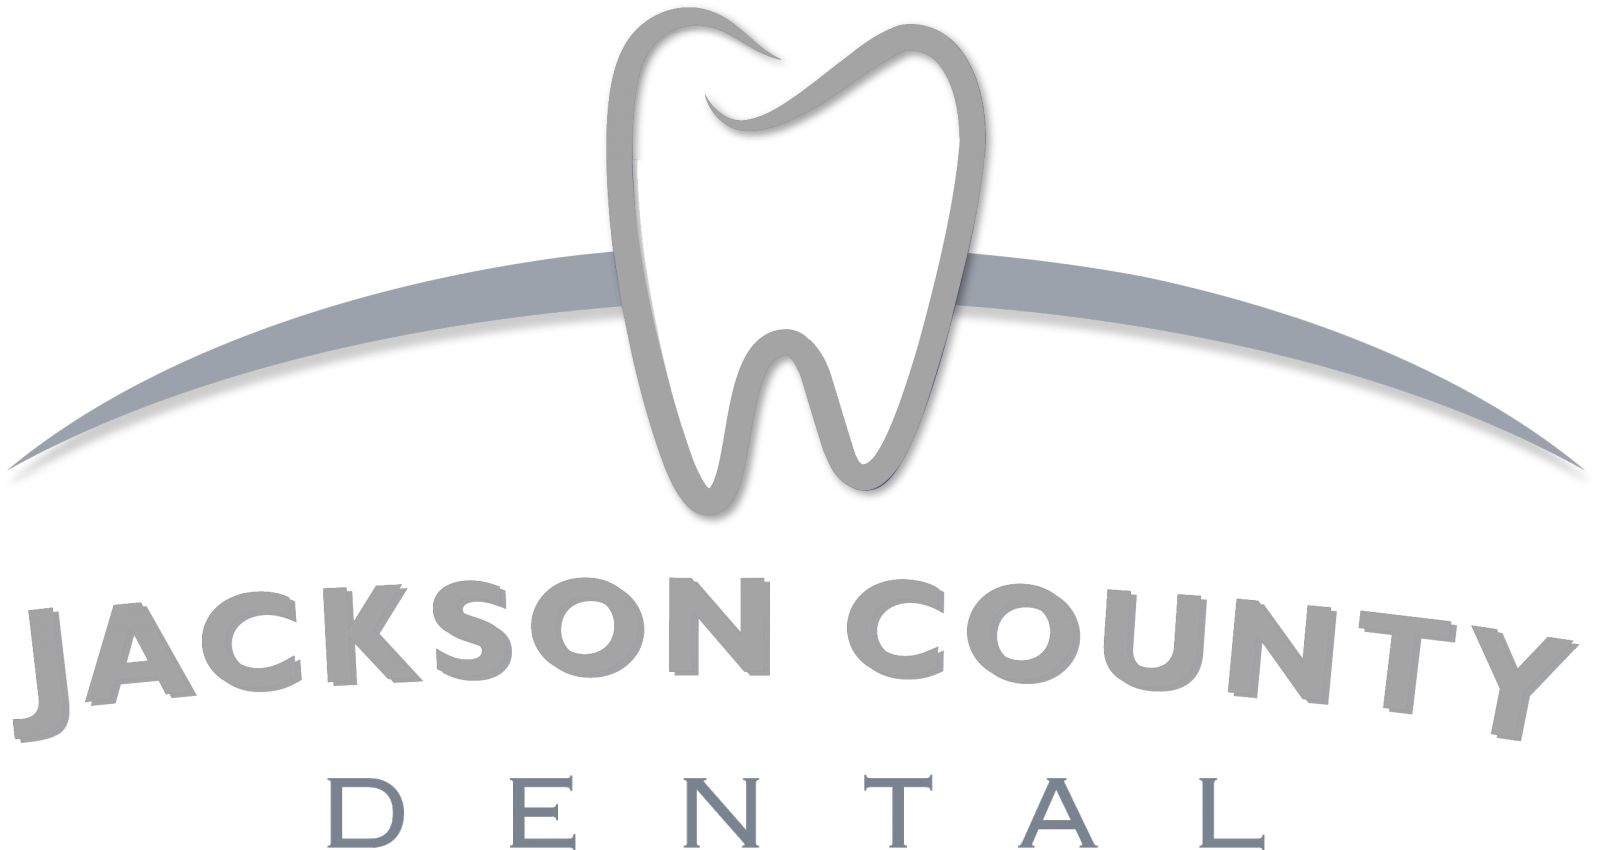 Jackson County Dental